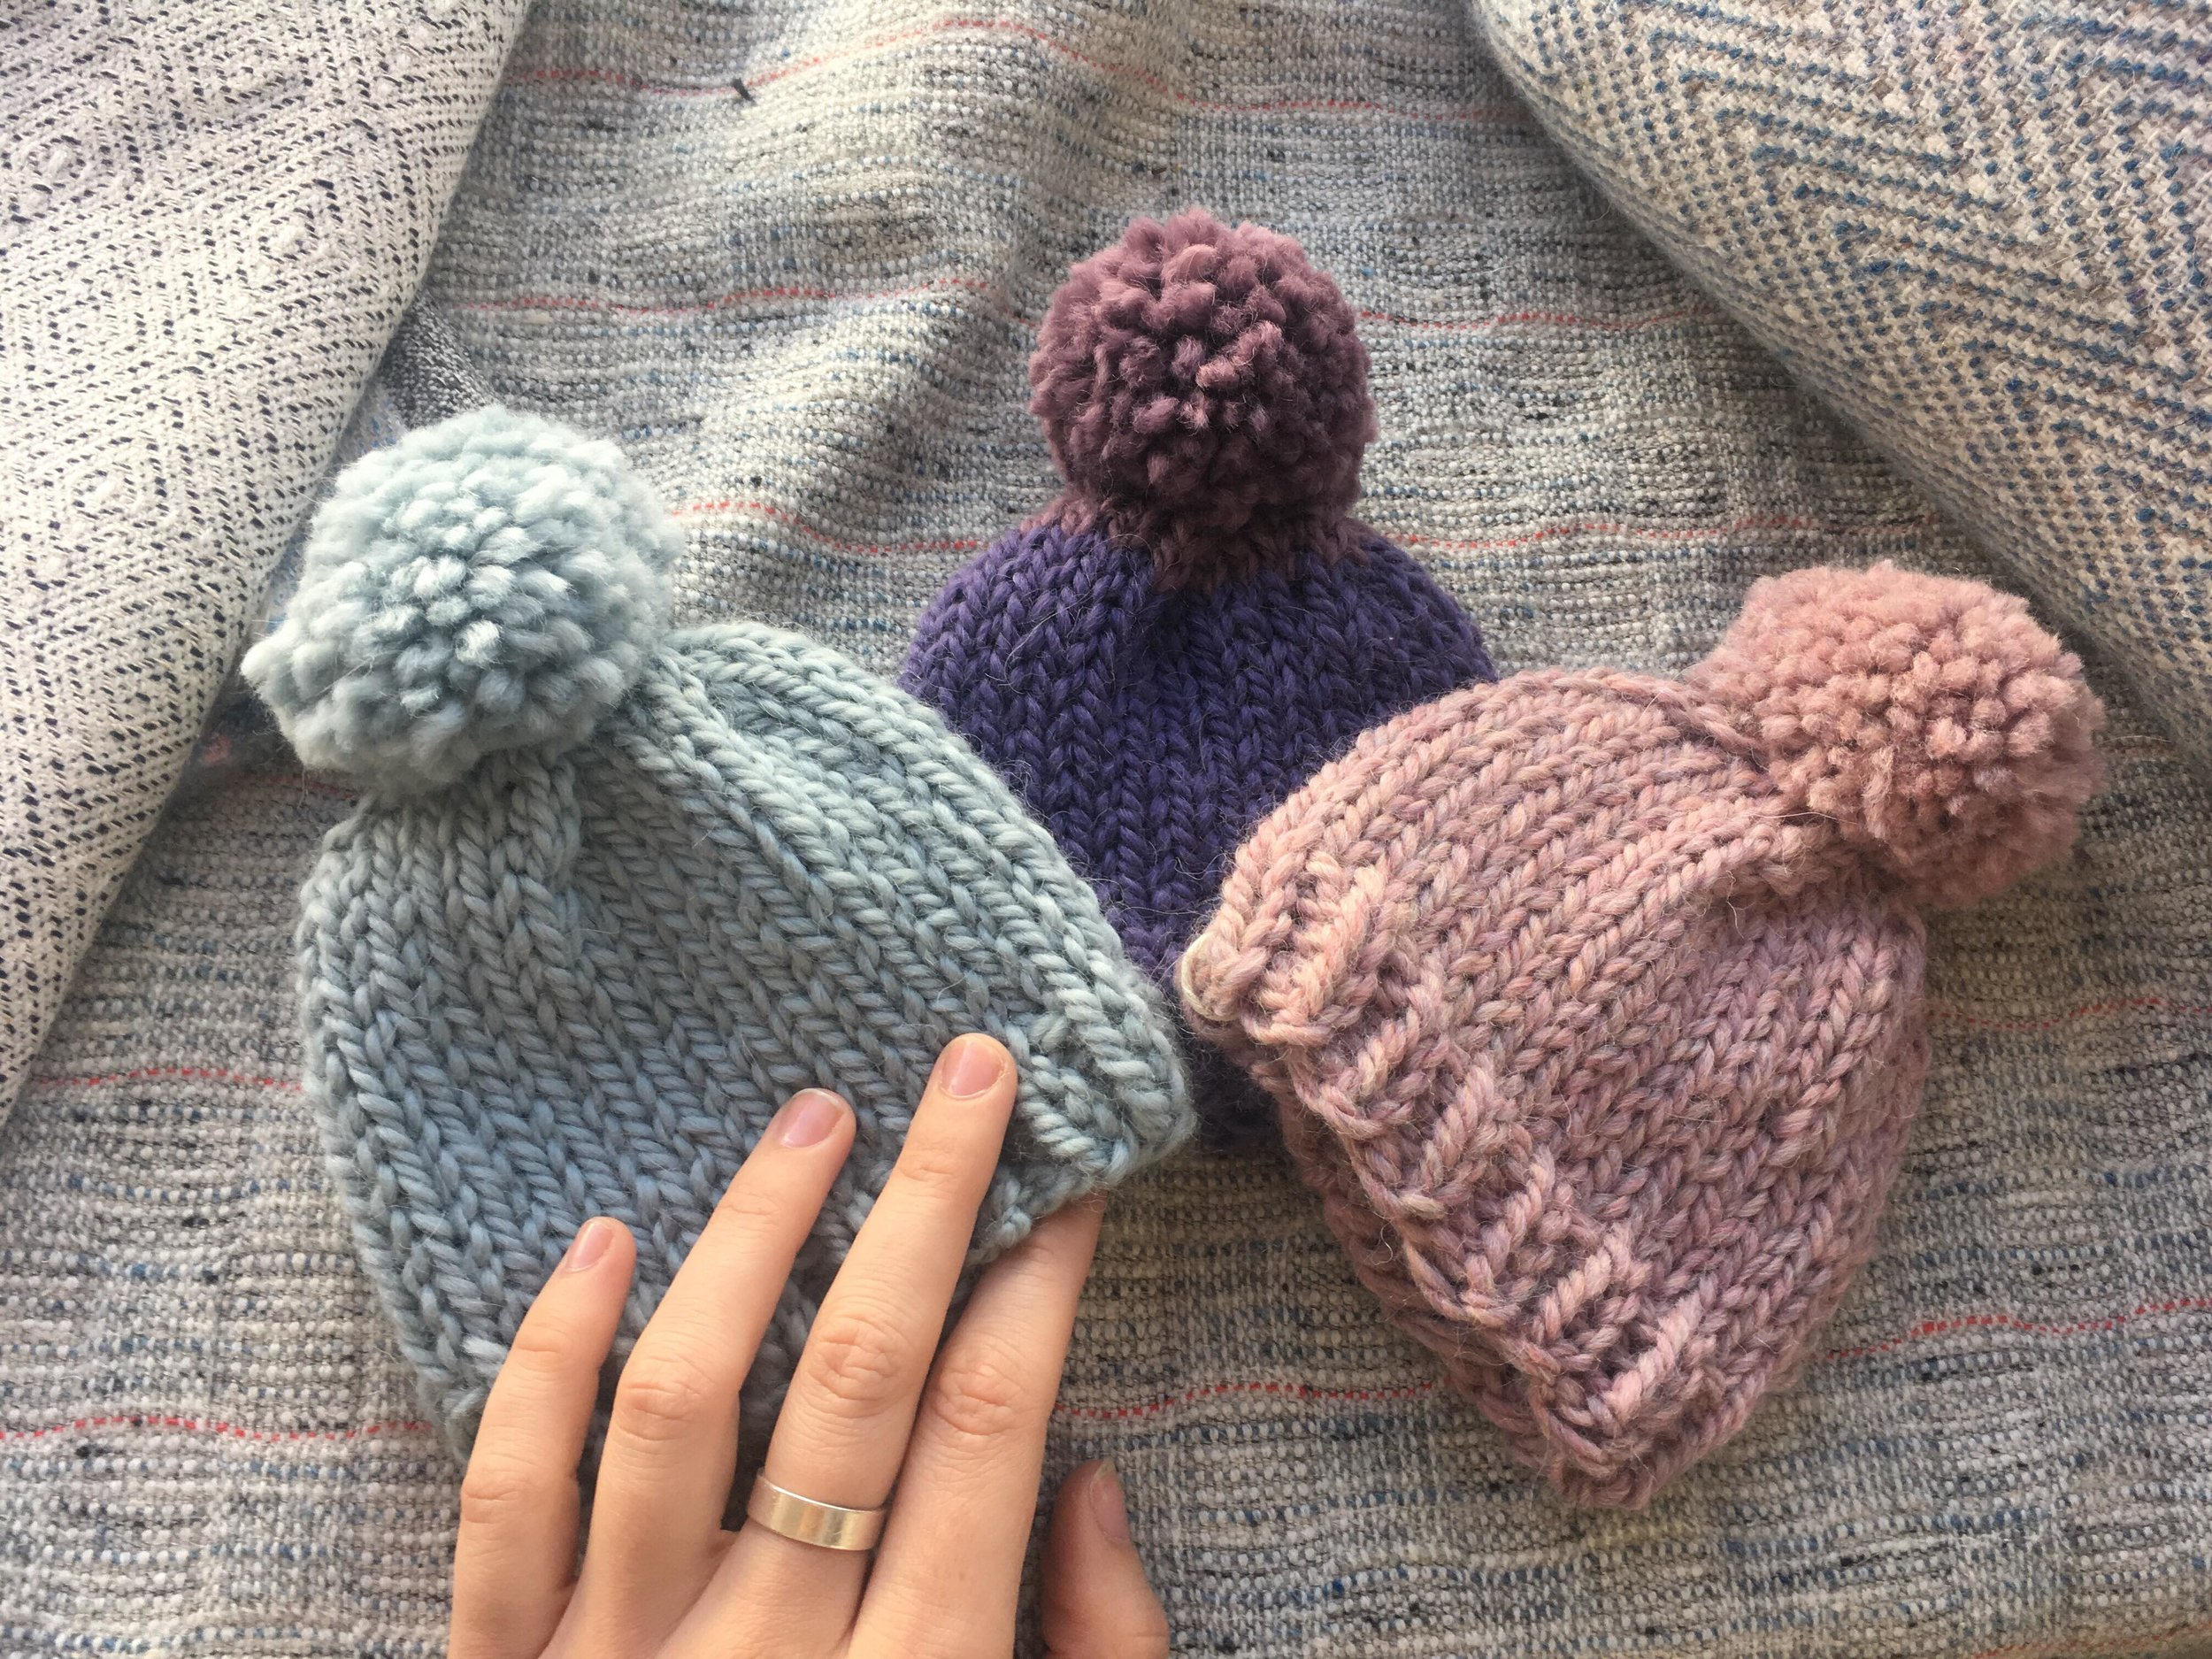 Learn to Knit at Laine - (It's free!)